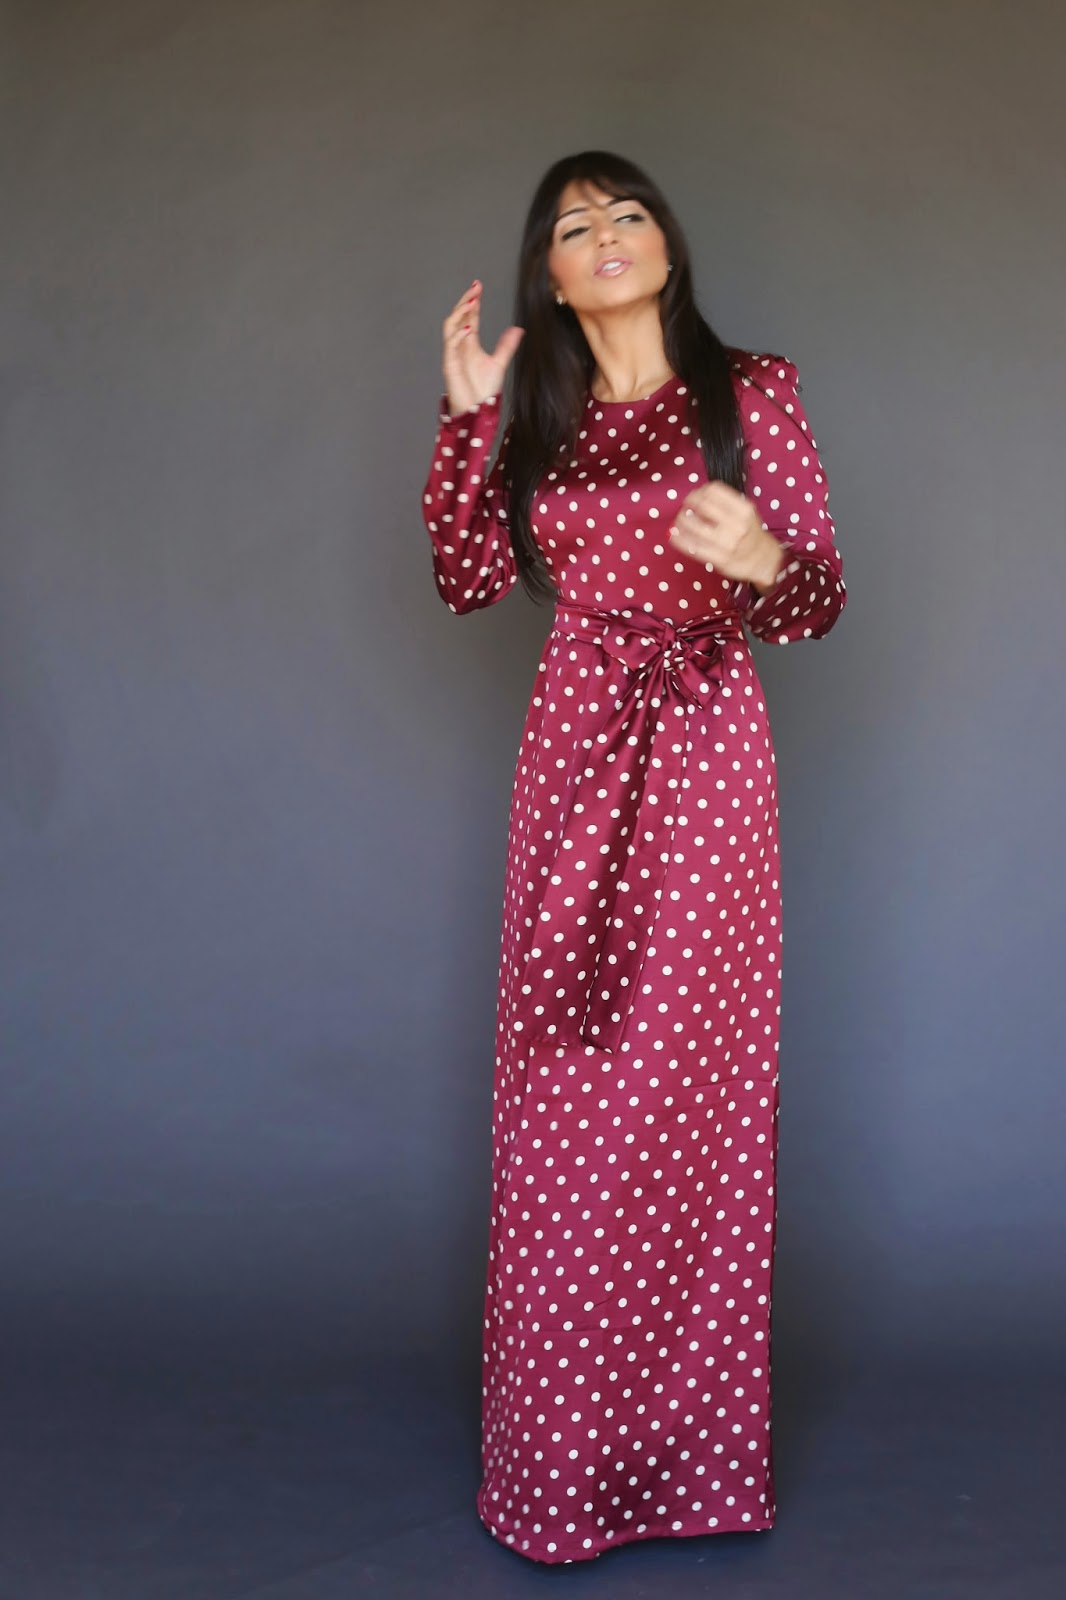 red polk a dot maxi dress with long sleeves modest style fashion hijab tznius islamic kosher Mode-sty